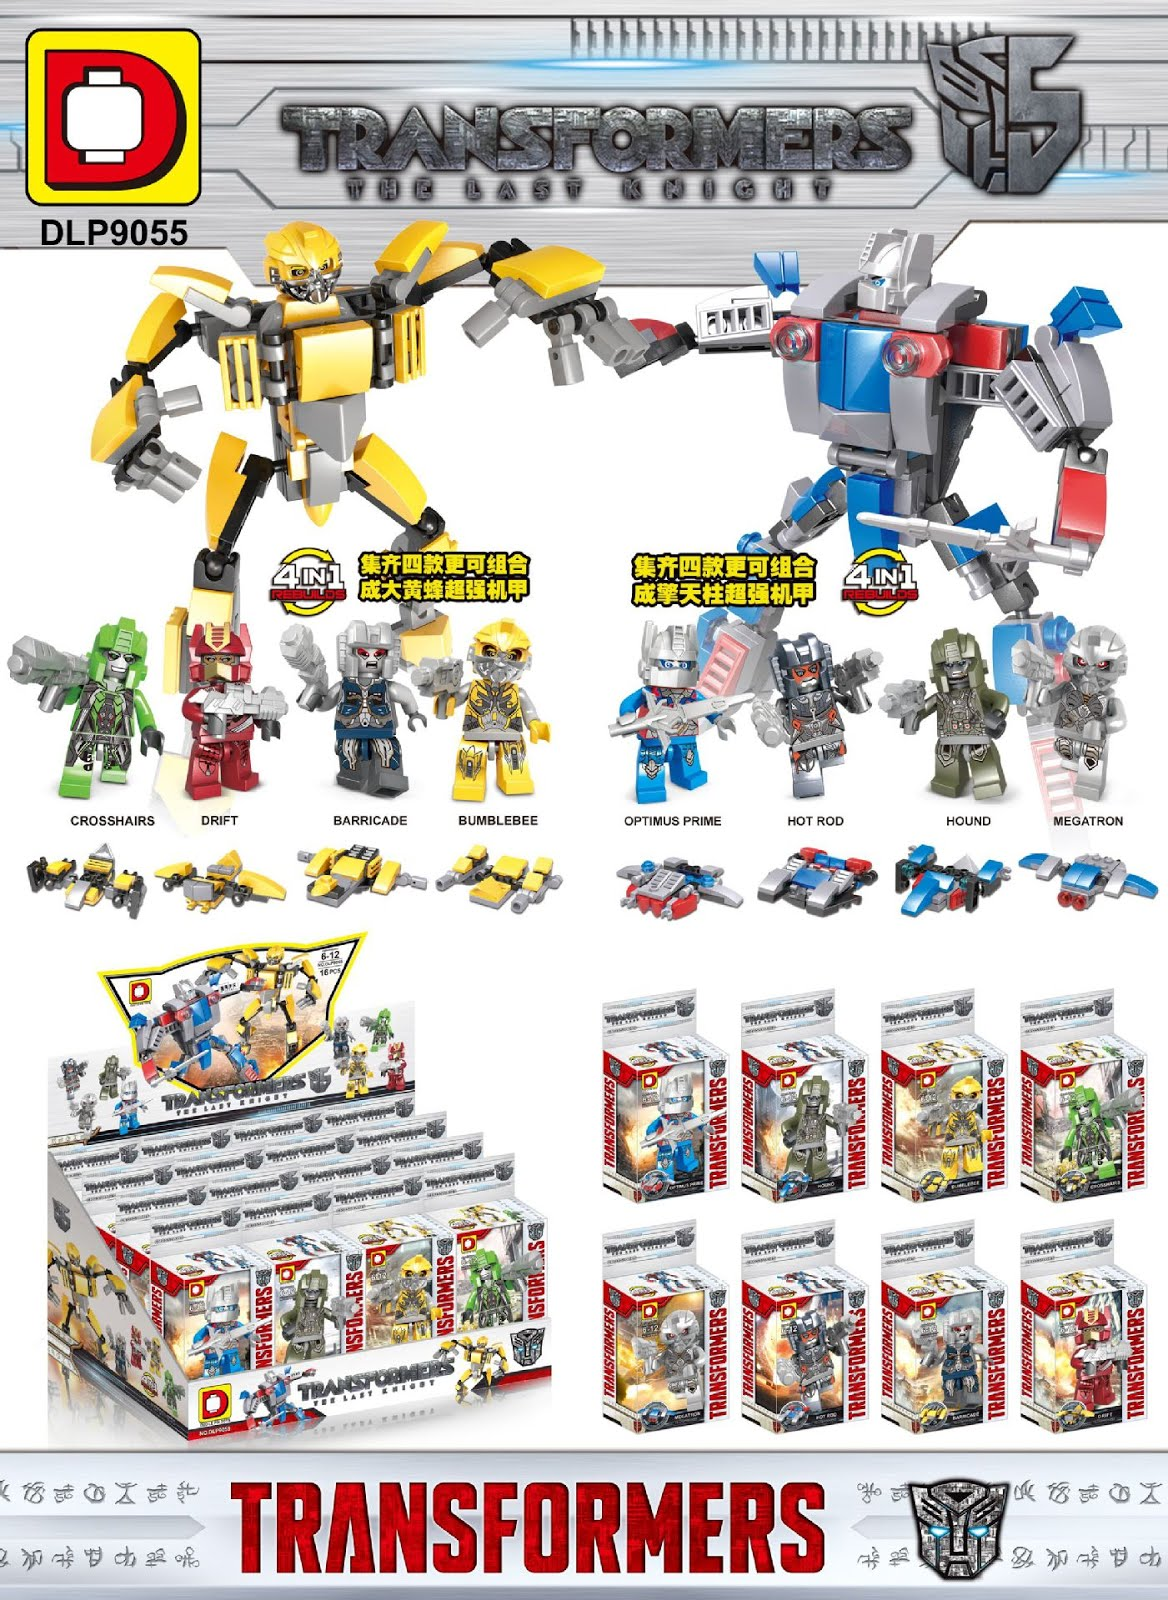 Downtheblocks Duo Le Pin Dlp9055 Transformers Minifigs And